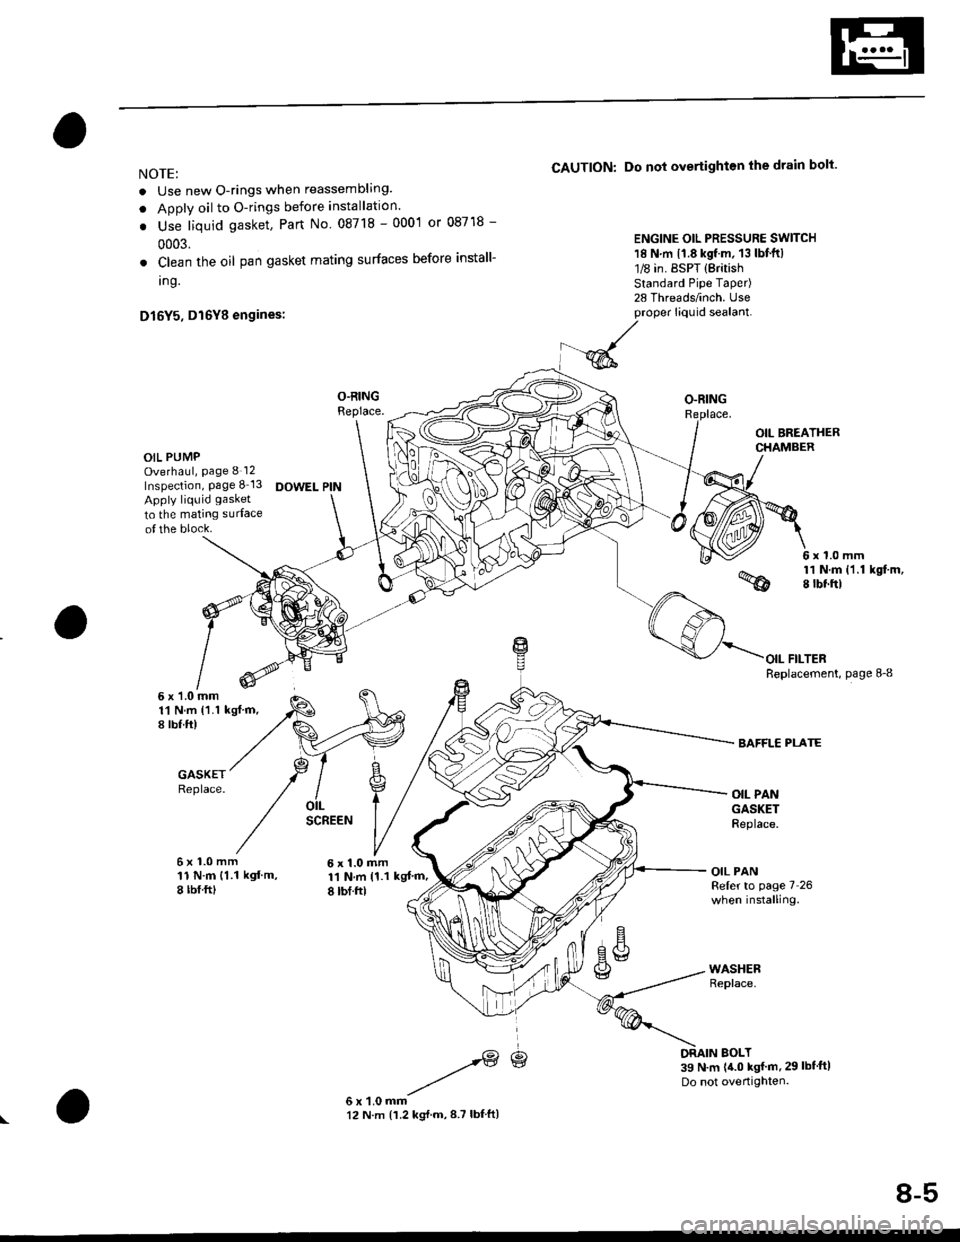 honda civic vi 96-00 manual